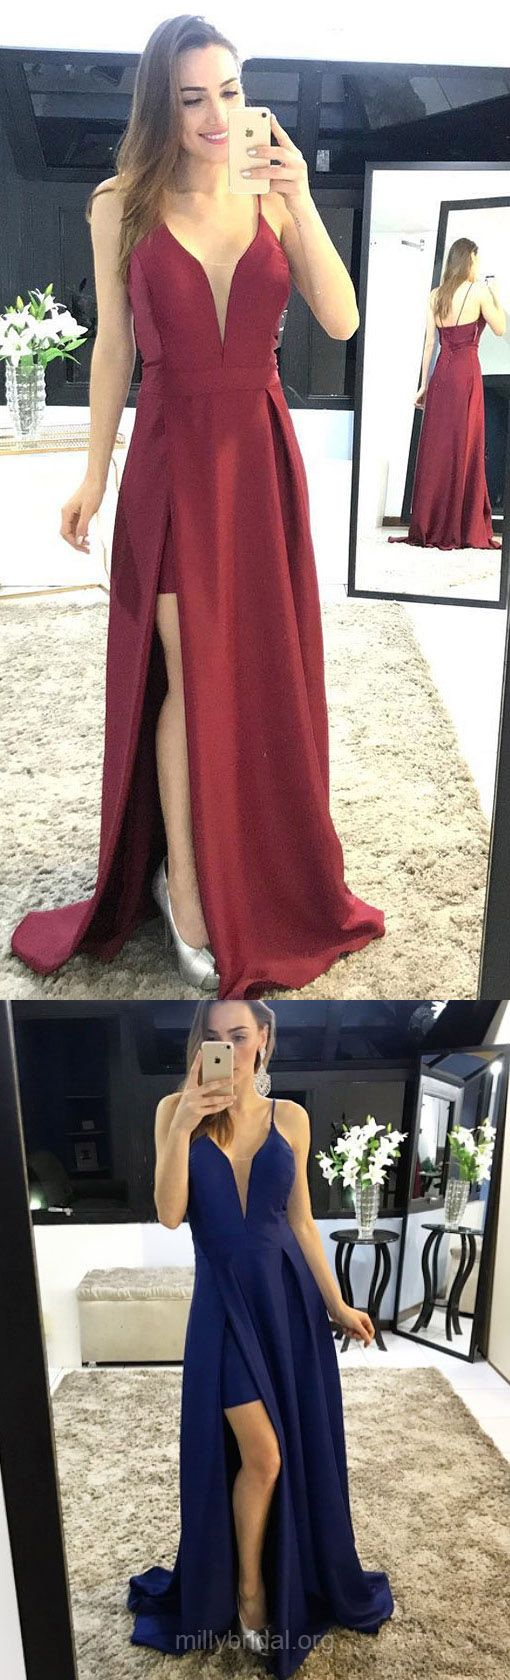 Prom Dresses, Red Prom Dresses, Long Prom Dresses, Prom Dresses For Teens, A-line Prom Dresses V-neck, Satin Prom Dresses Split Front  #formaldresses #promdresses